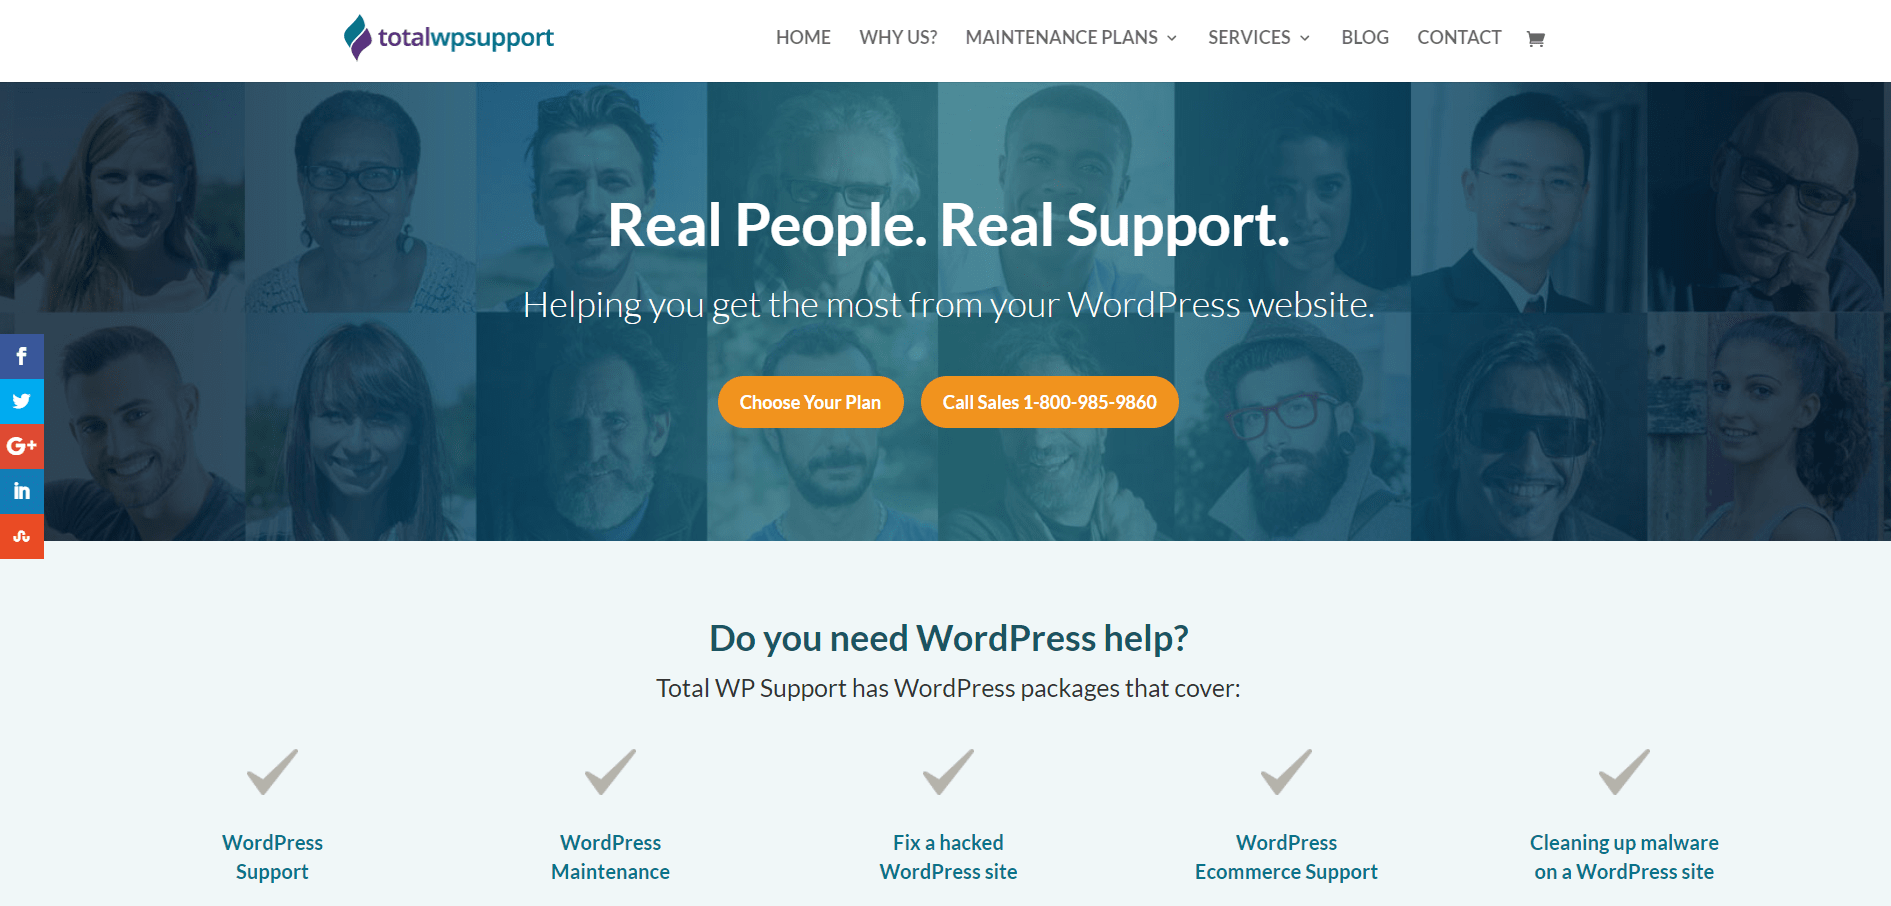 Total WP Support